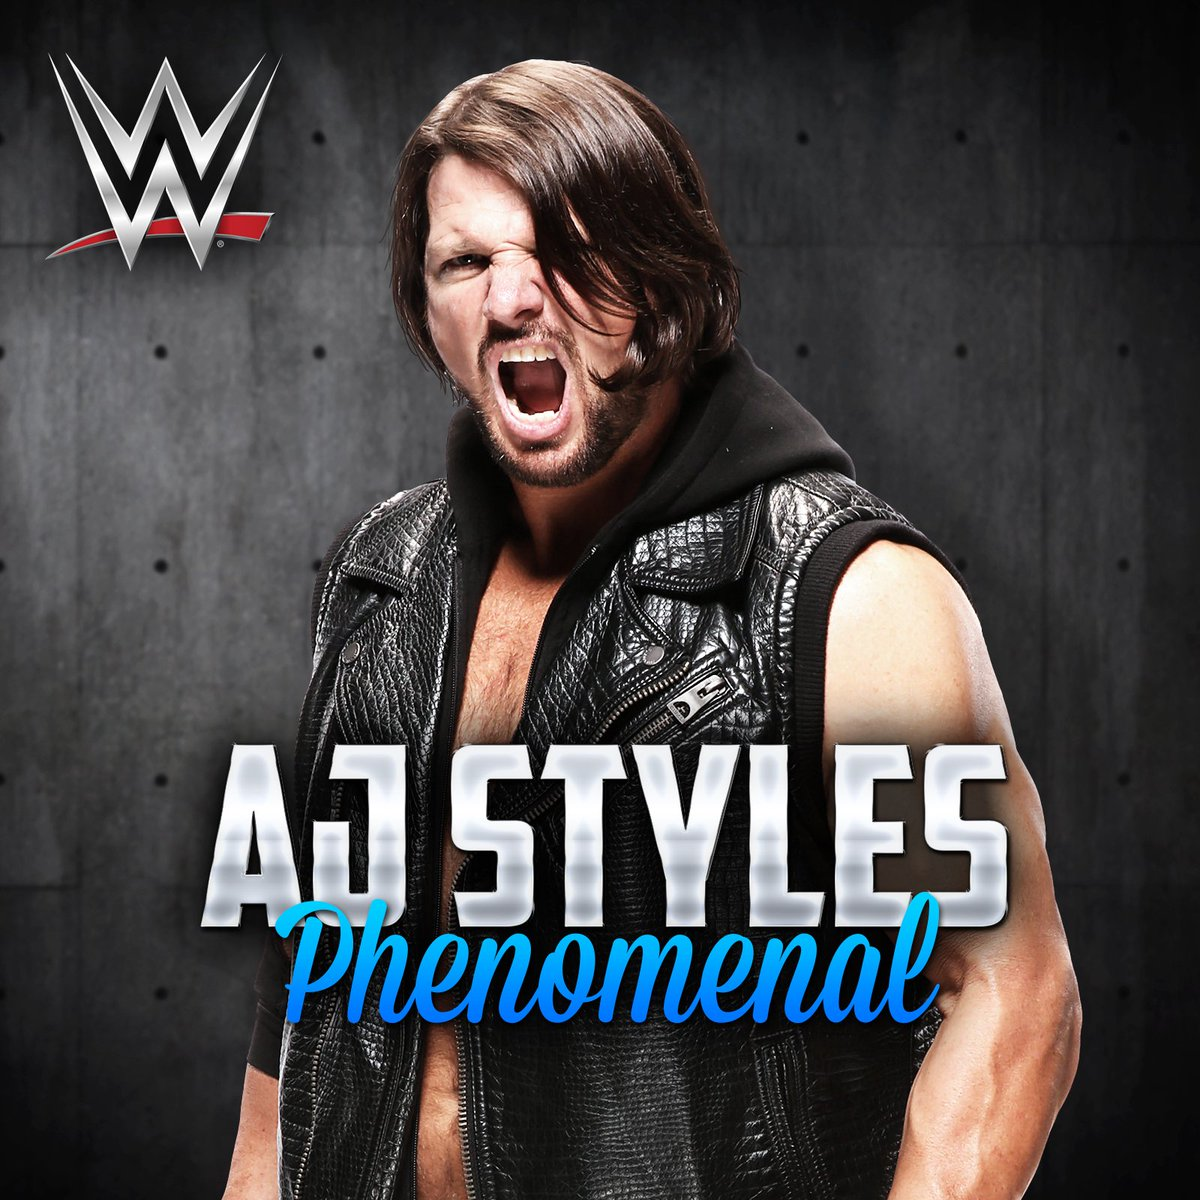 YOU asked for it, YOU got it! @AJStylesOrg's theme #Phenomenal is LIVE on @YouTube NOW! https://t.co/0hRBB51OwJ https://t.co/HUfKJNiy0A